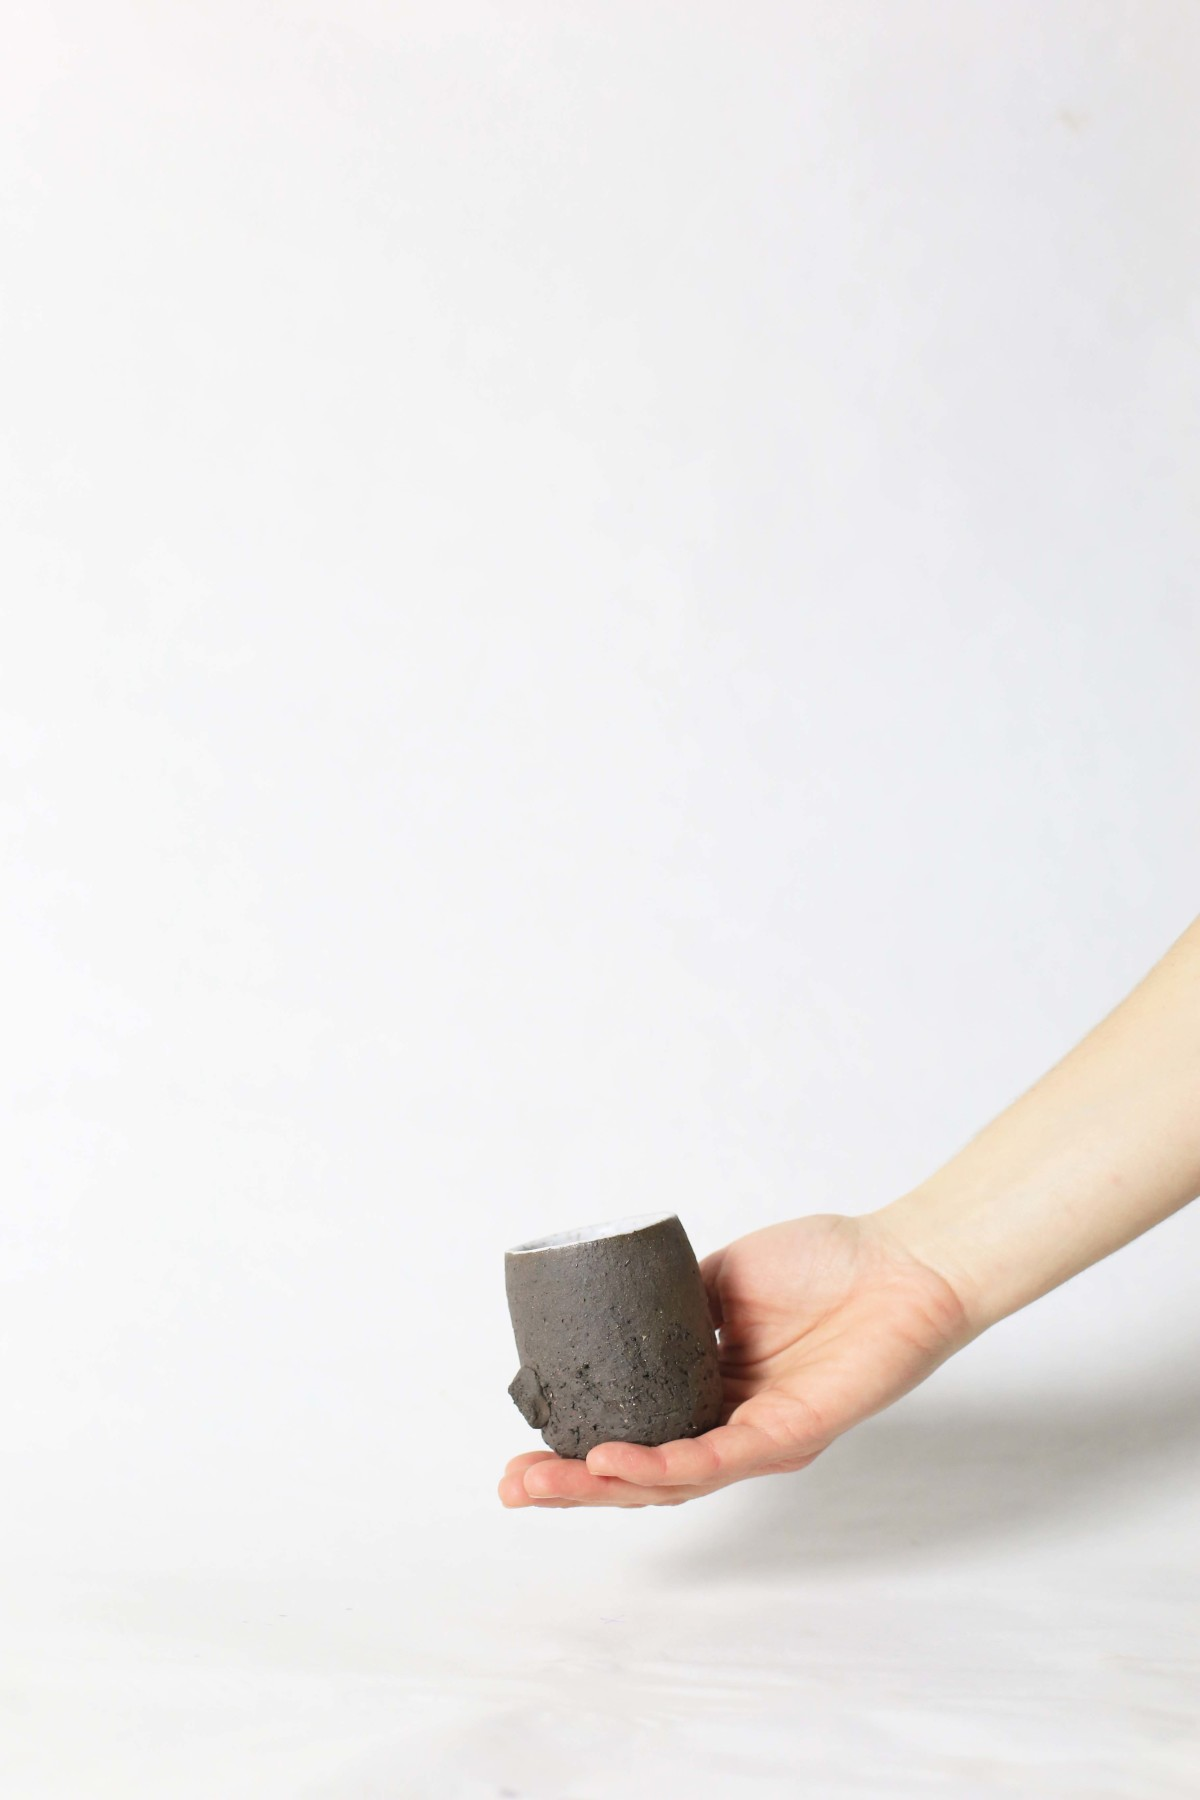 a hand holds terra nigra clay cup with a bulge below on a white background